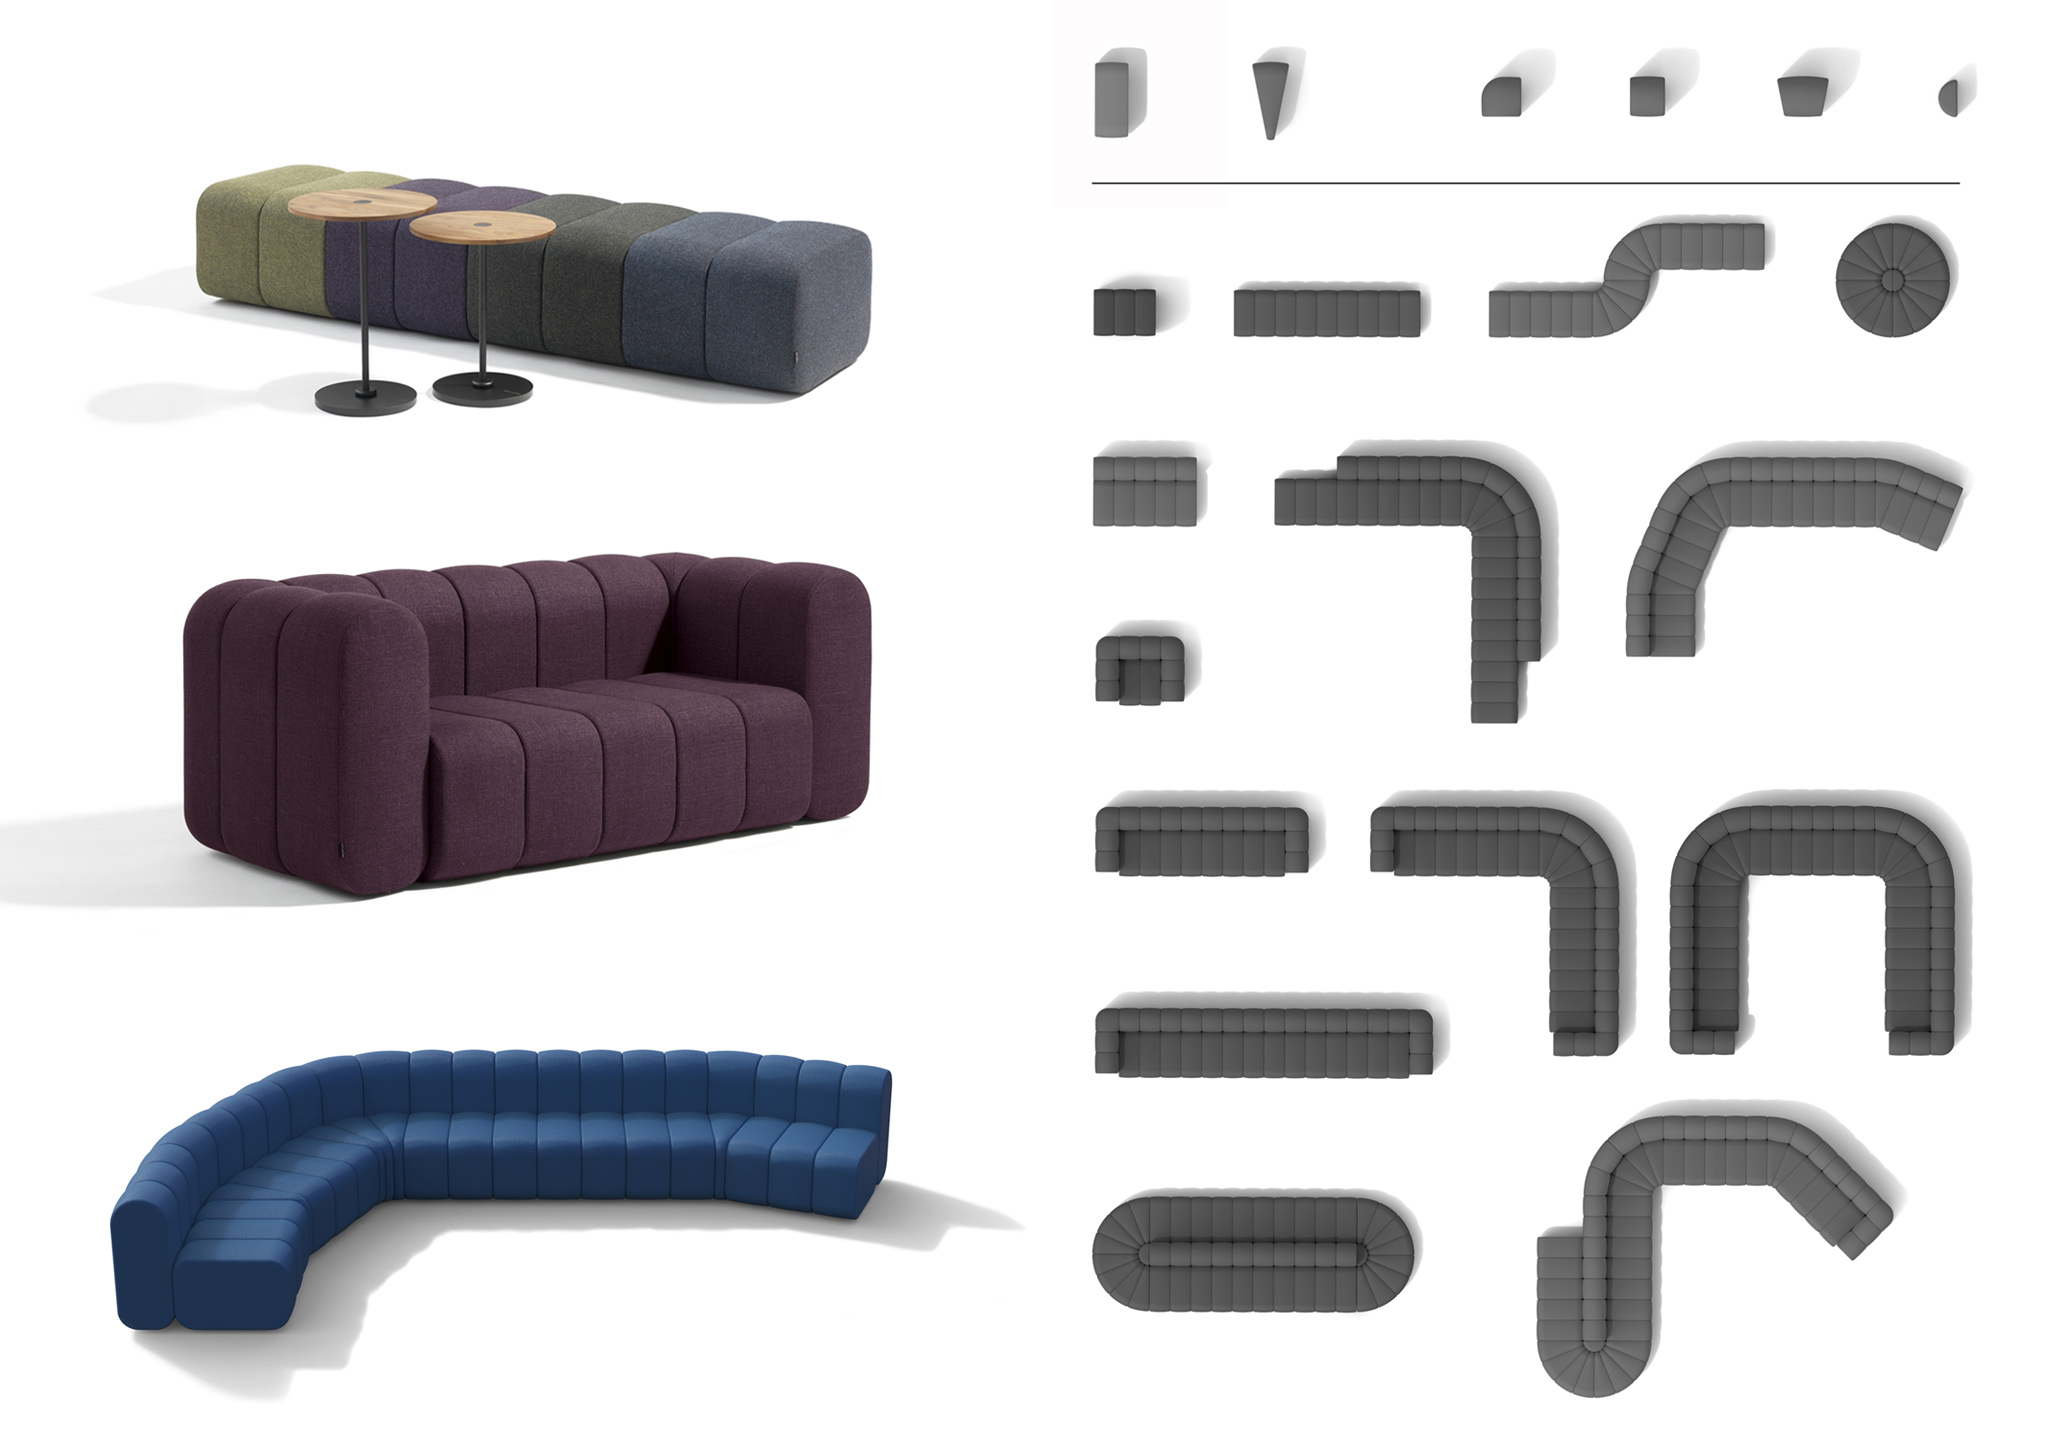 Bob Sofa Modular Seating